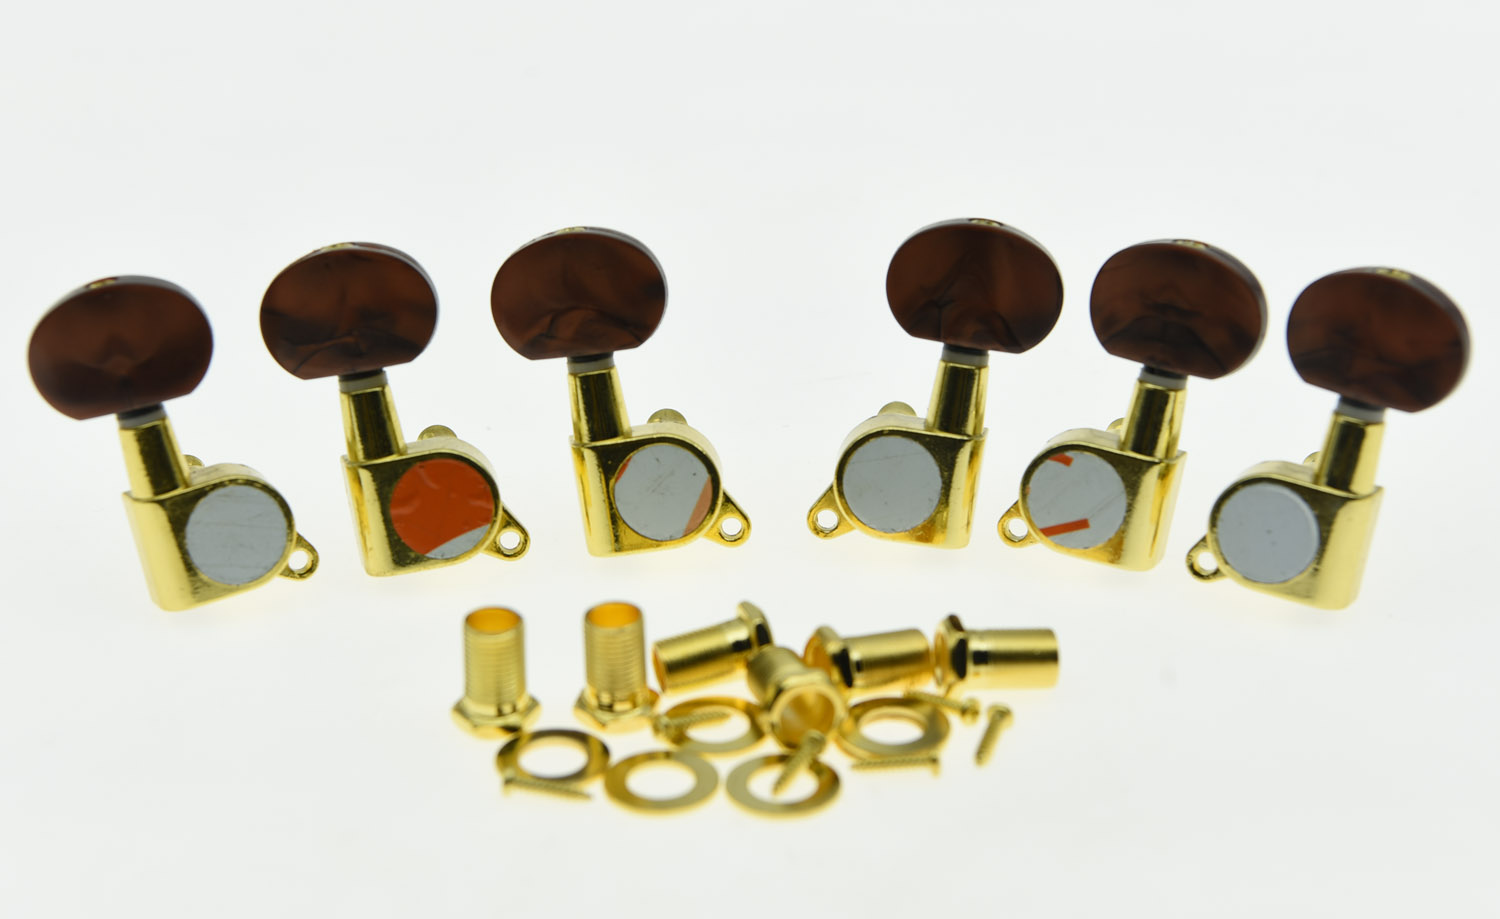 KAISH Gold w/ Pearl Buttons Guitar Tuners Tuning Keys for Acoustic Electric Guitars дезодорант аэрозоль fa men xtreme invisible